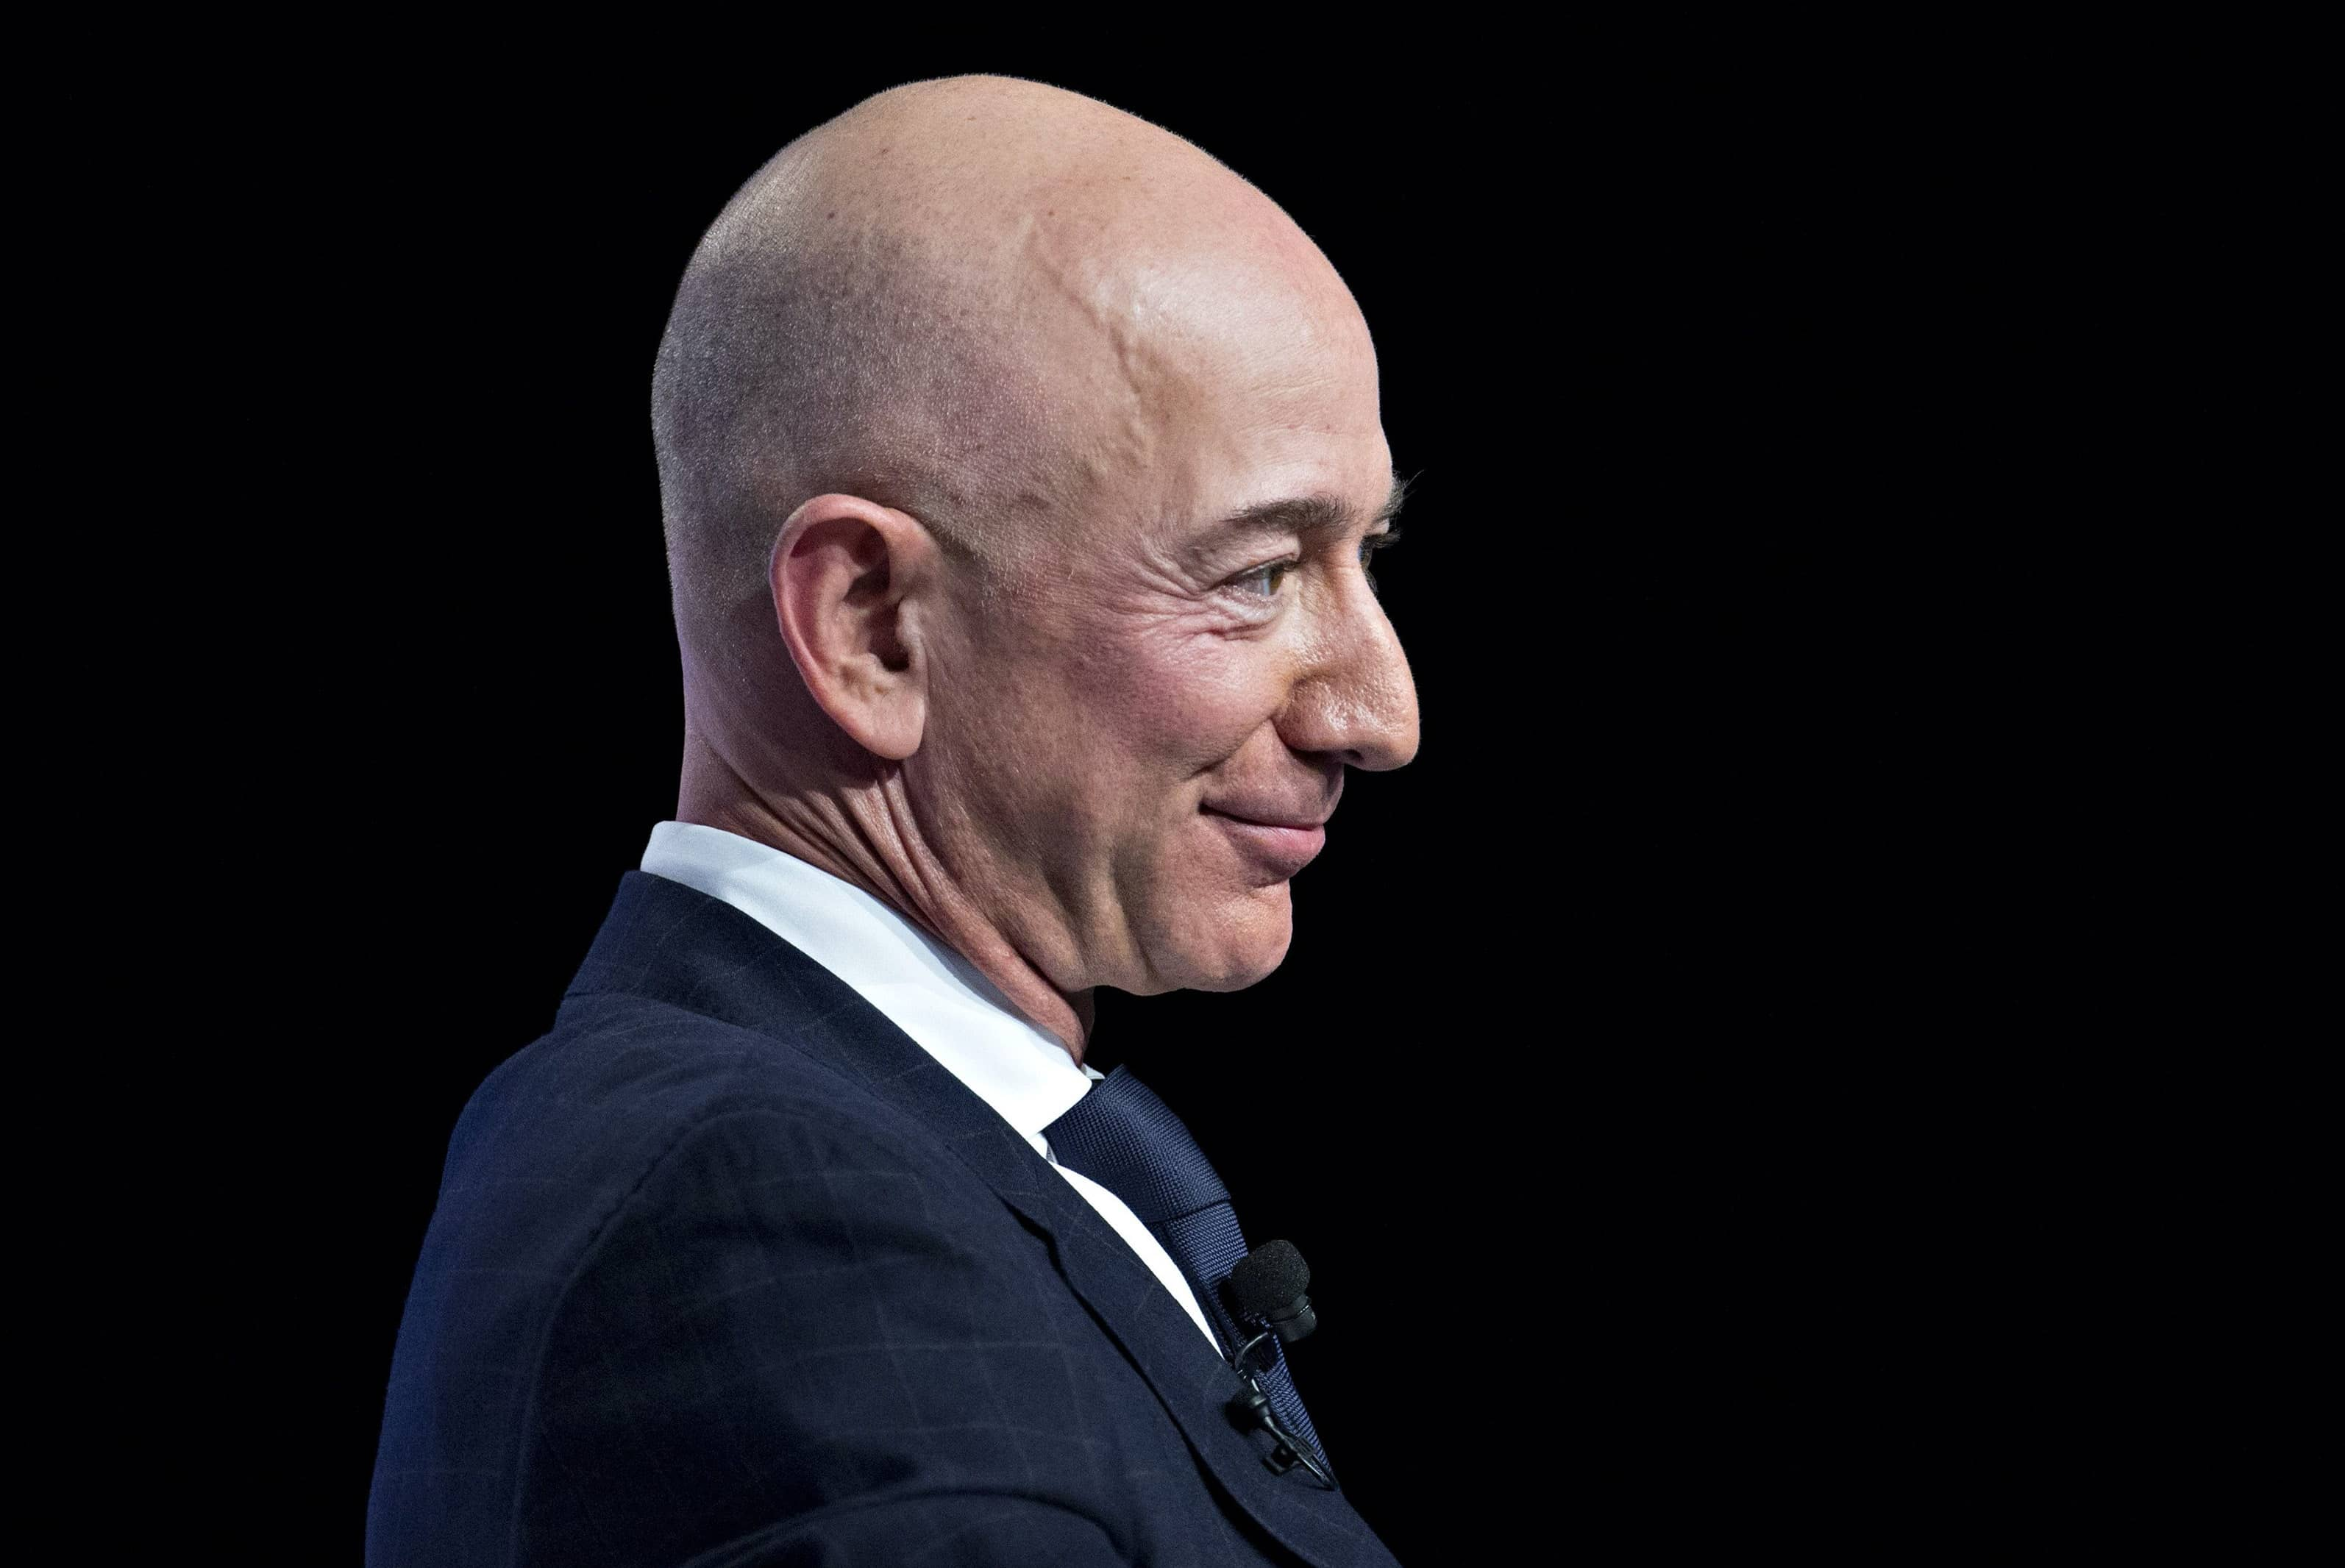 BEZOS MAY TESTIFY ON BIG TECH, BUT WITH OTHER CEOS